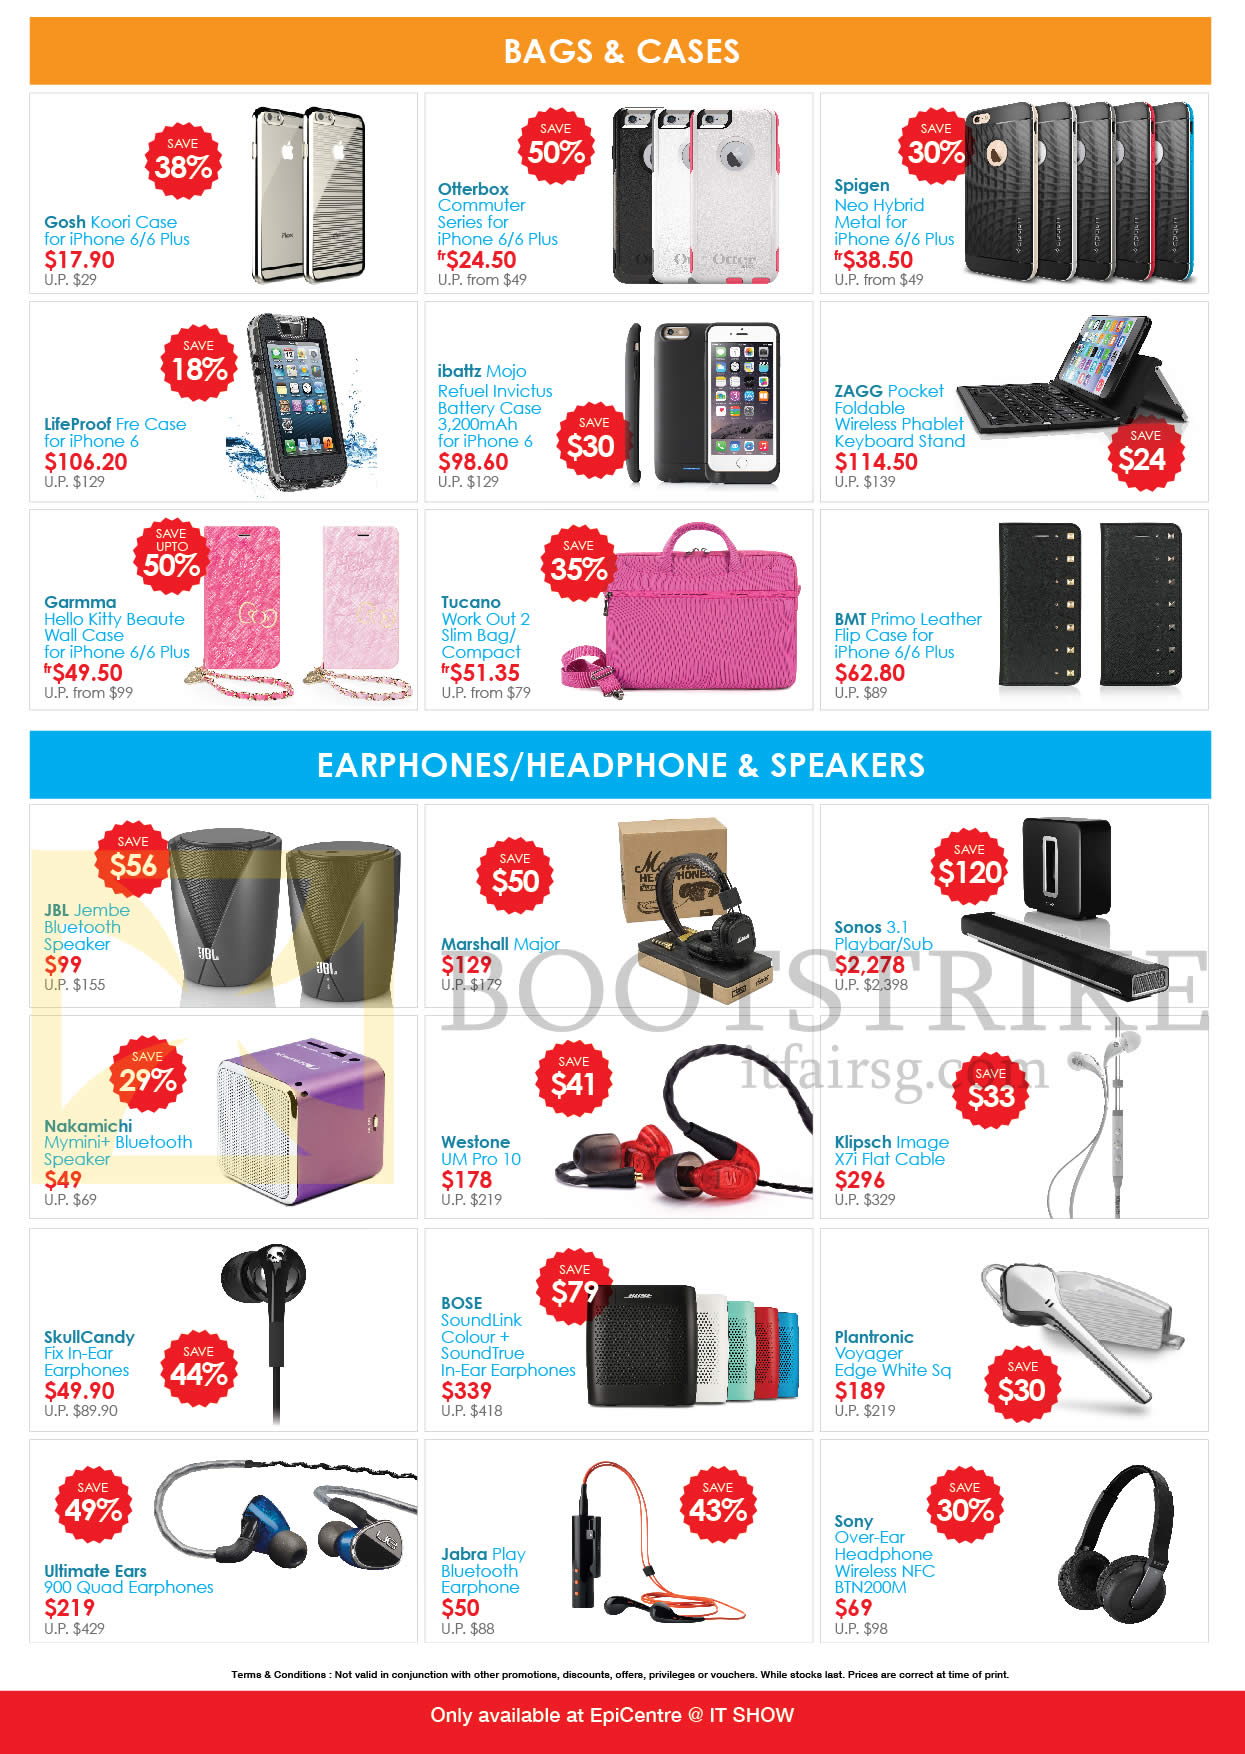 IT SHOW 2015 price list image brochure of EpiCentre Accessories Bags, Cases, Earphones, Headphones, Speakers, Gosh, Zagg, Tucano, Lifeproof, Garmma, JBL, Marshall, Sonos, Bose, Klipsch, Westone, Sony, Ultimate Ears